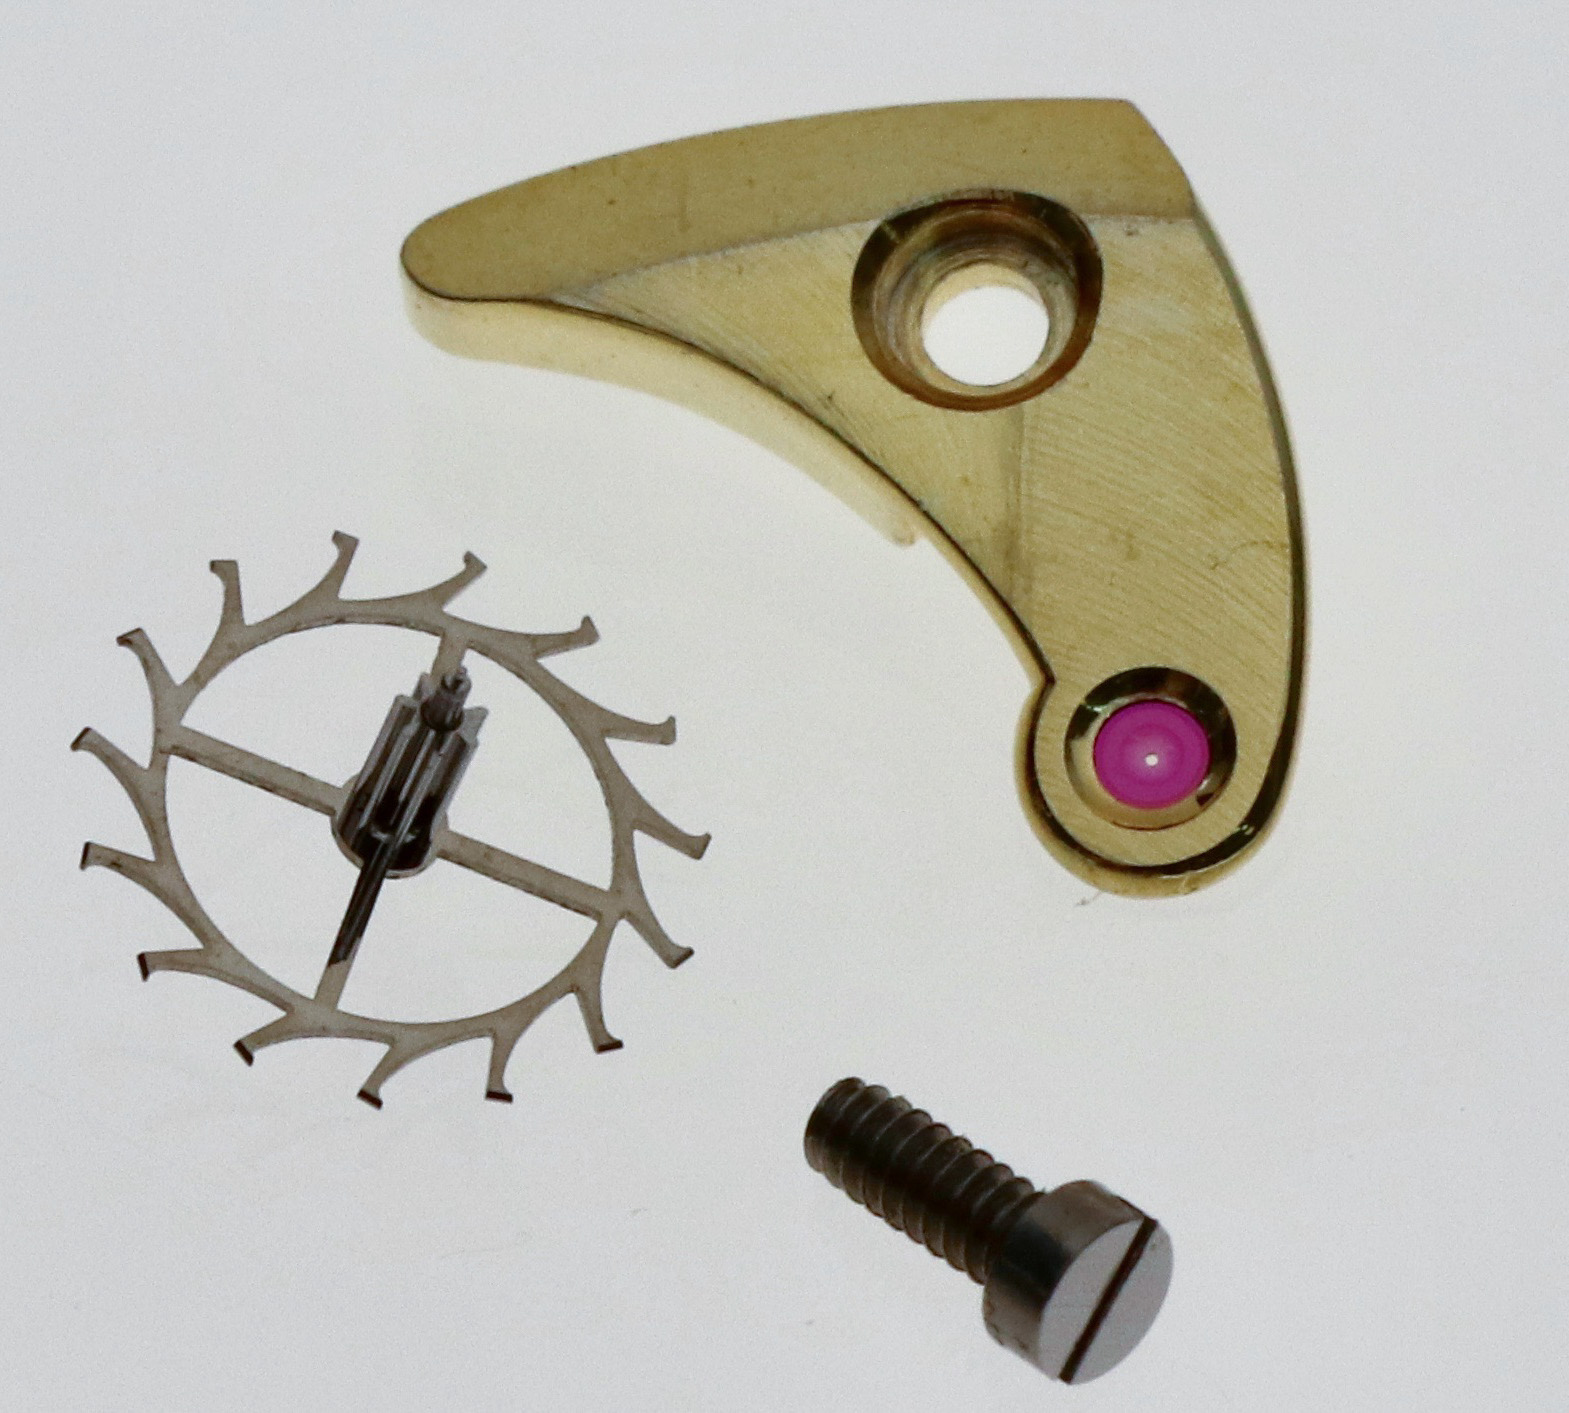 The escape wheel and its cock